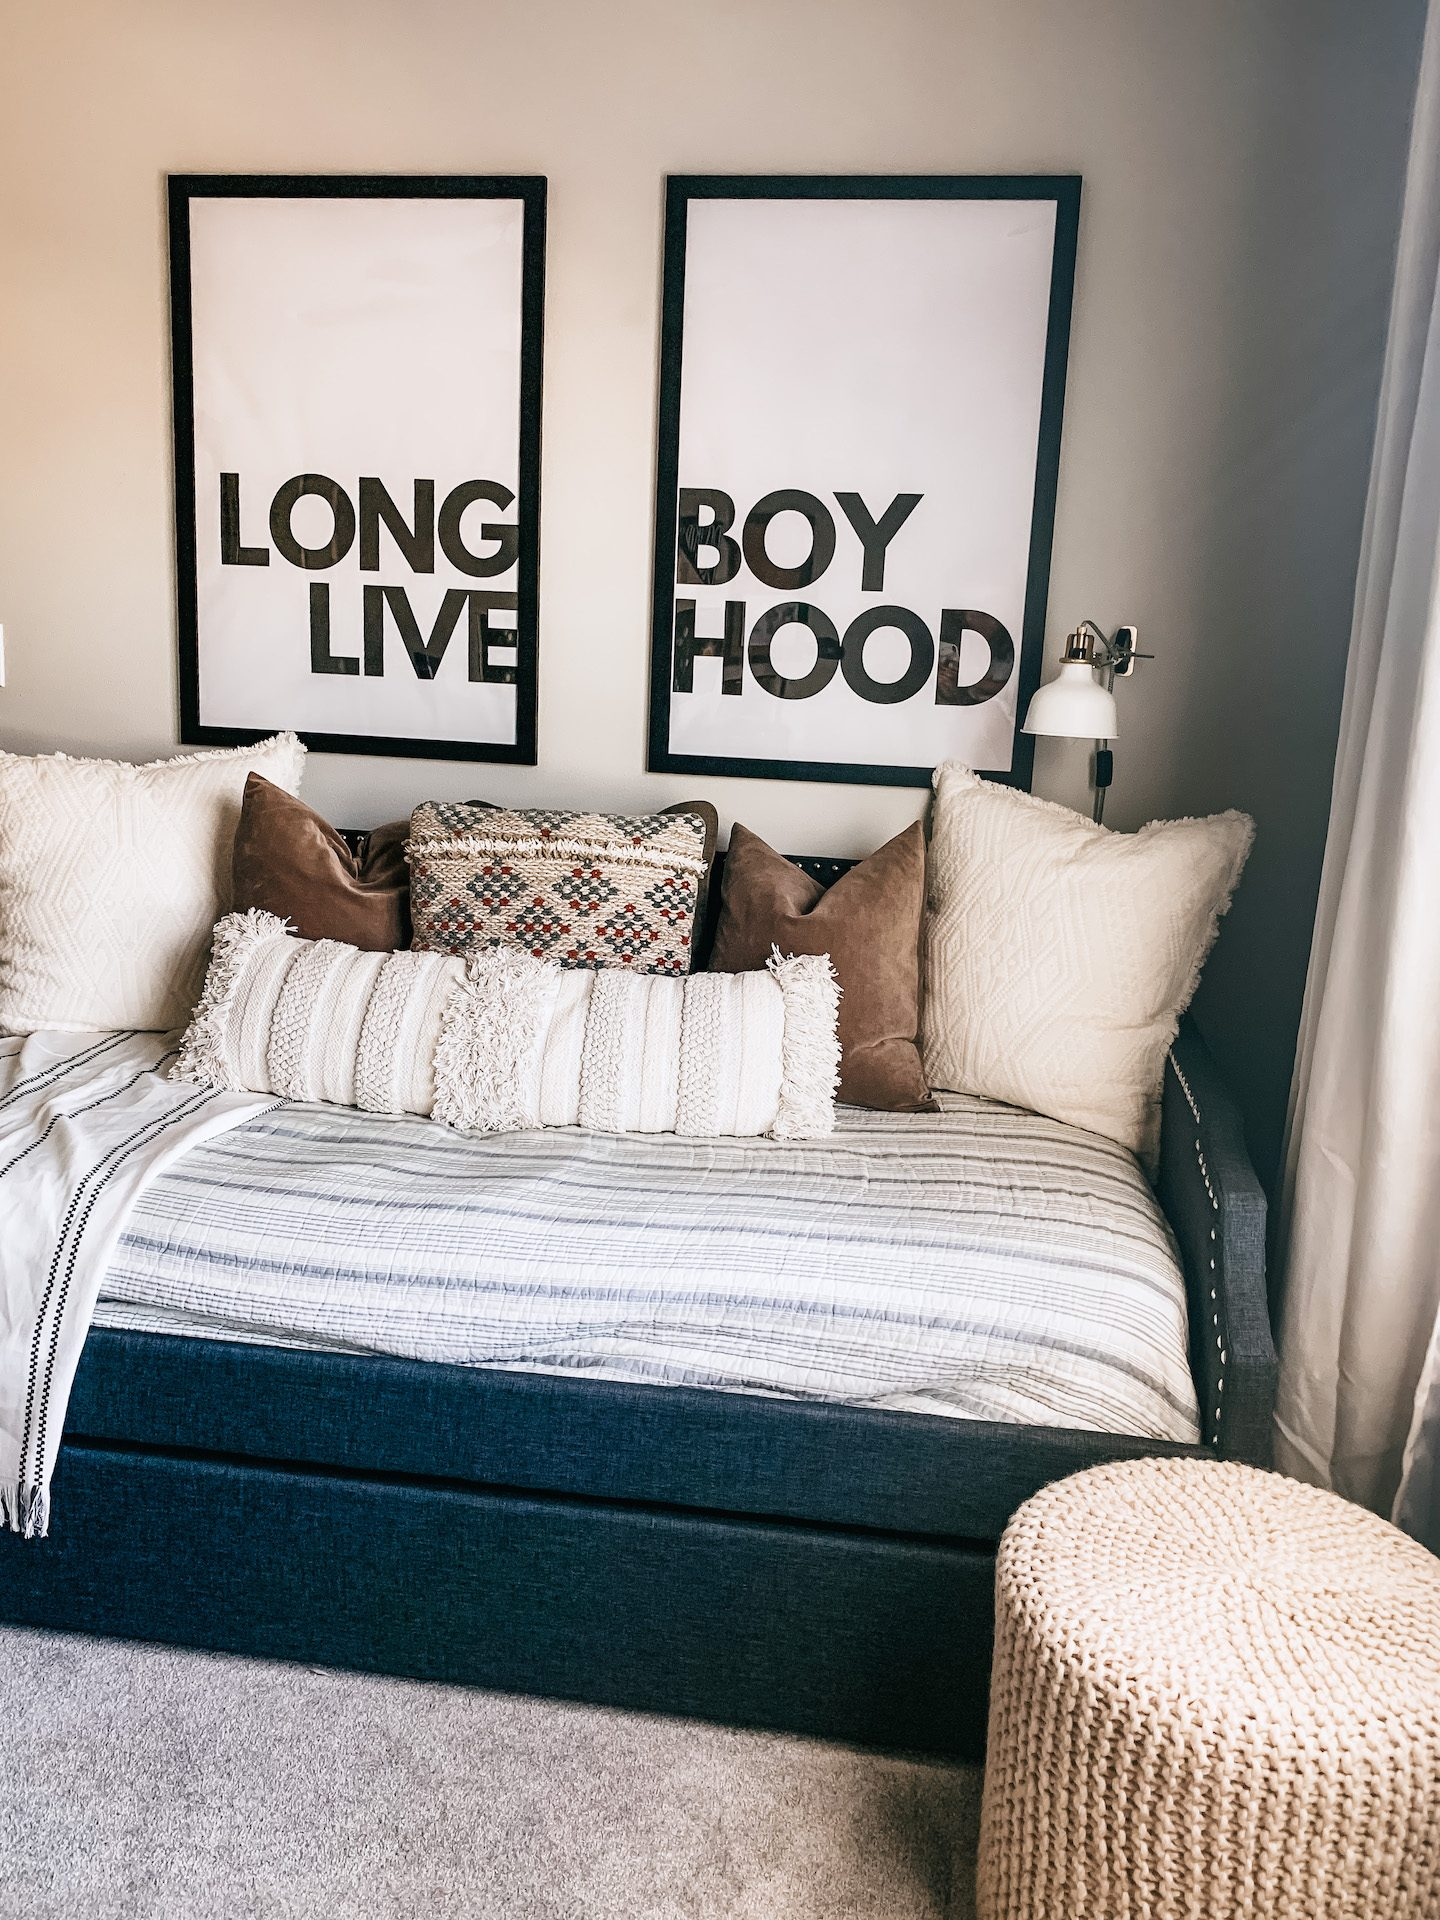 Big Boy room, Tween Boy Room, Daybed, Long Live Boy Hood, Mature Boy Room, DIY, Large Scale Print DIY, Kid Room, Kid Desk